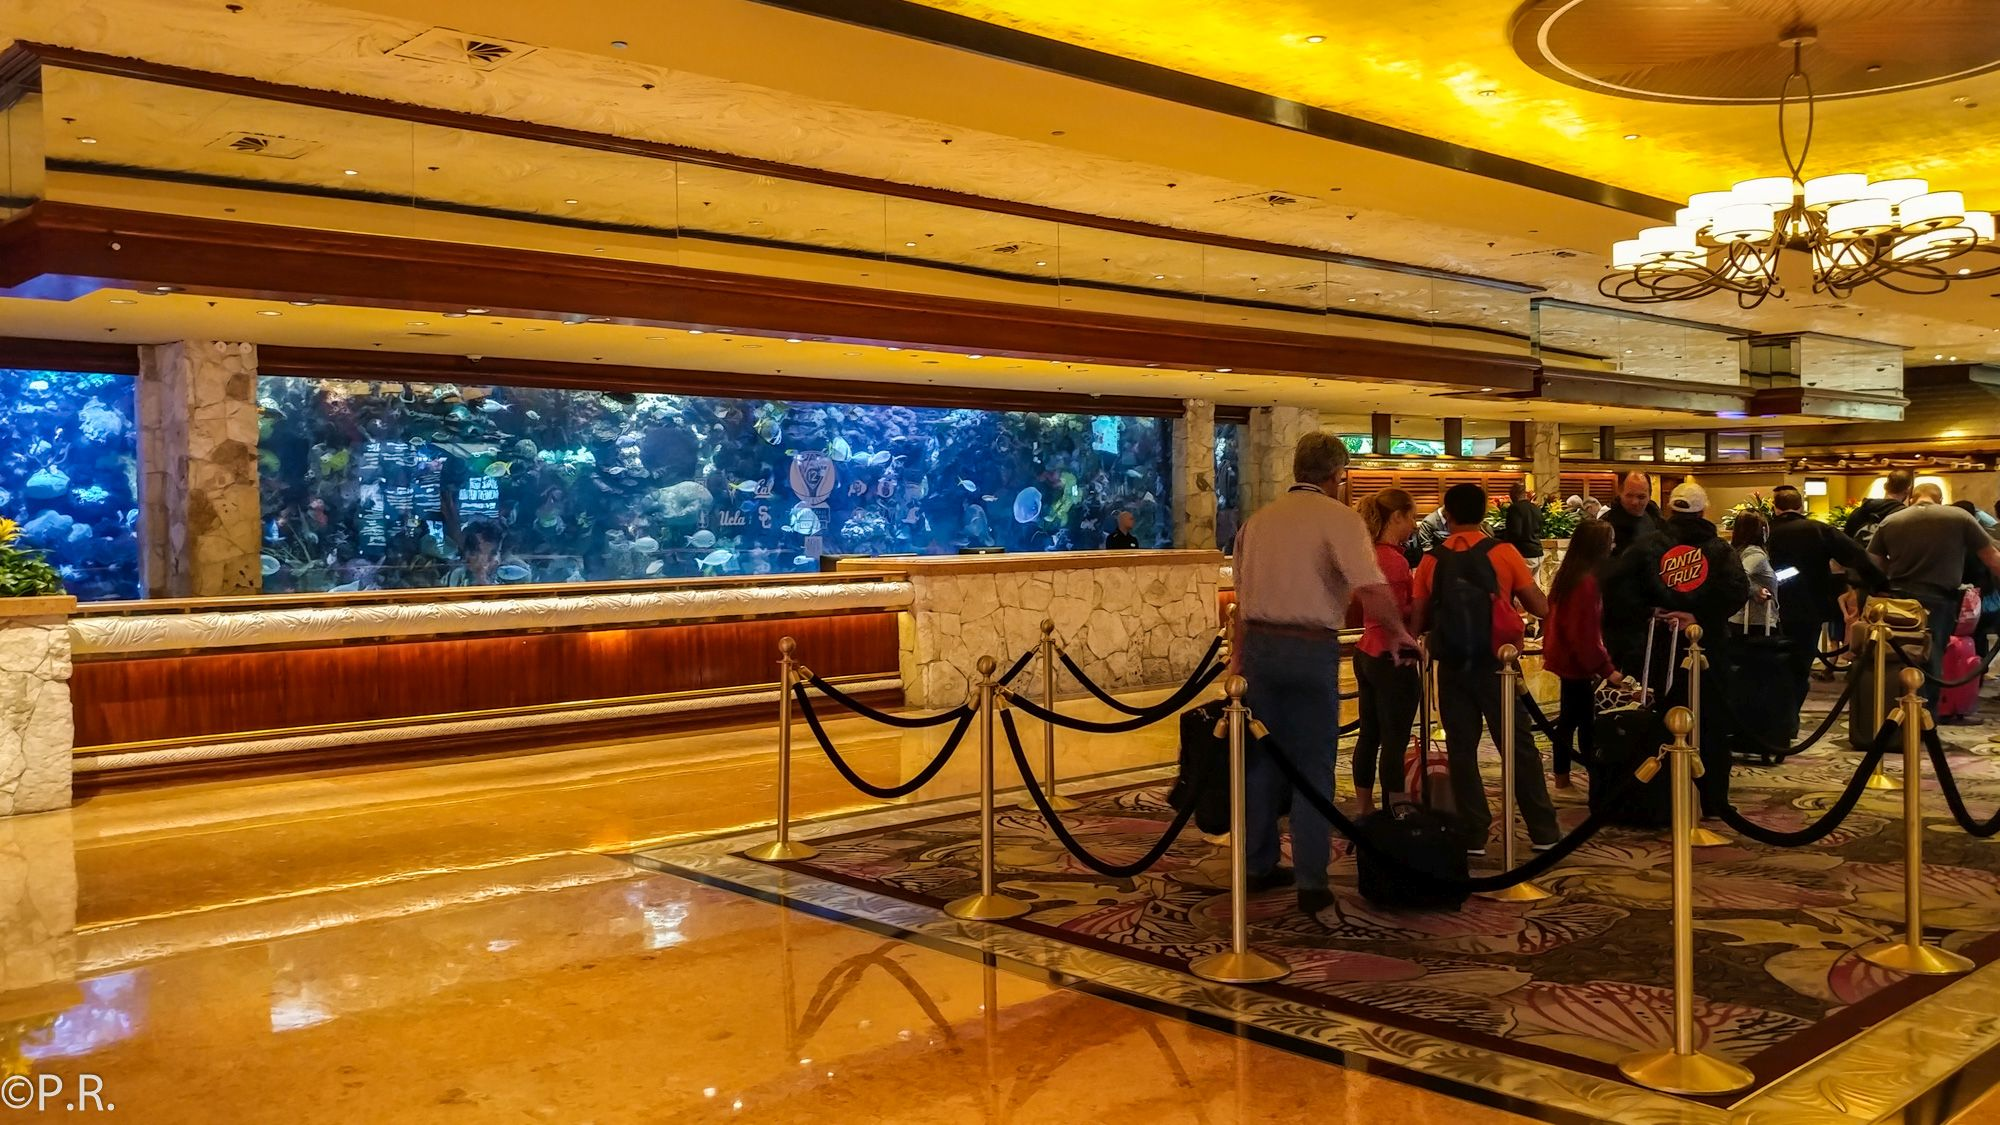 Hotel Review: The Mirage - Hotel and Casino - Gate to Adventures